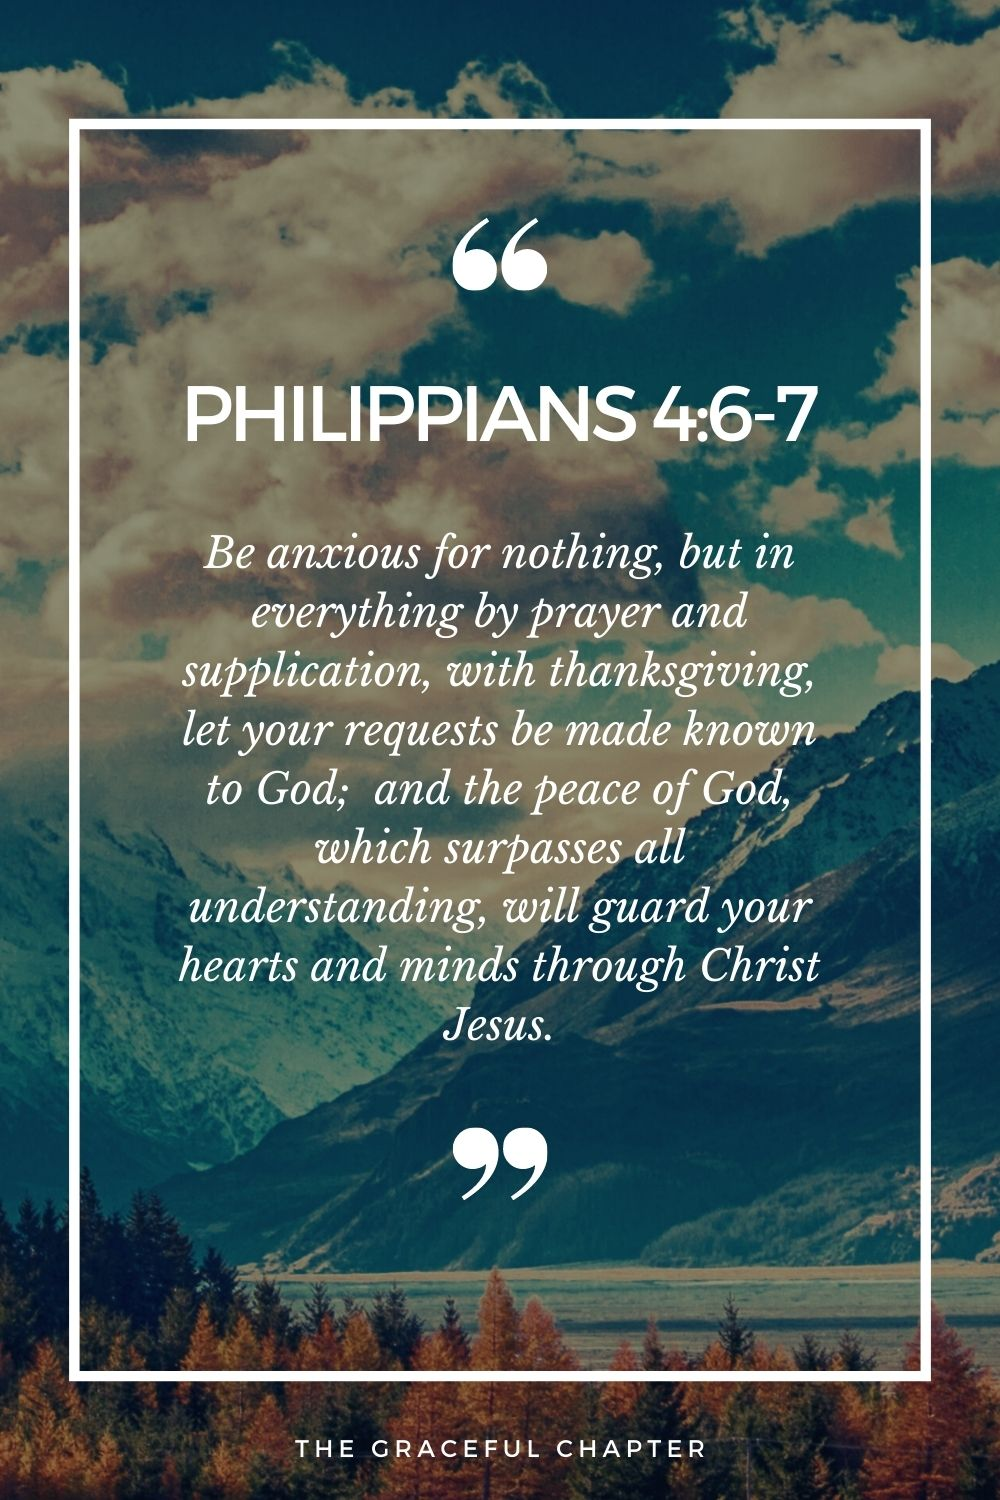 Be anxious for nothing, but in everything by prayer and supplication, with thanksgiving, let your requests be made known to God; Philippians 4:6